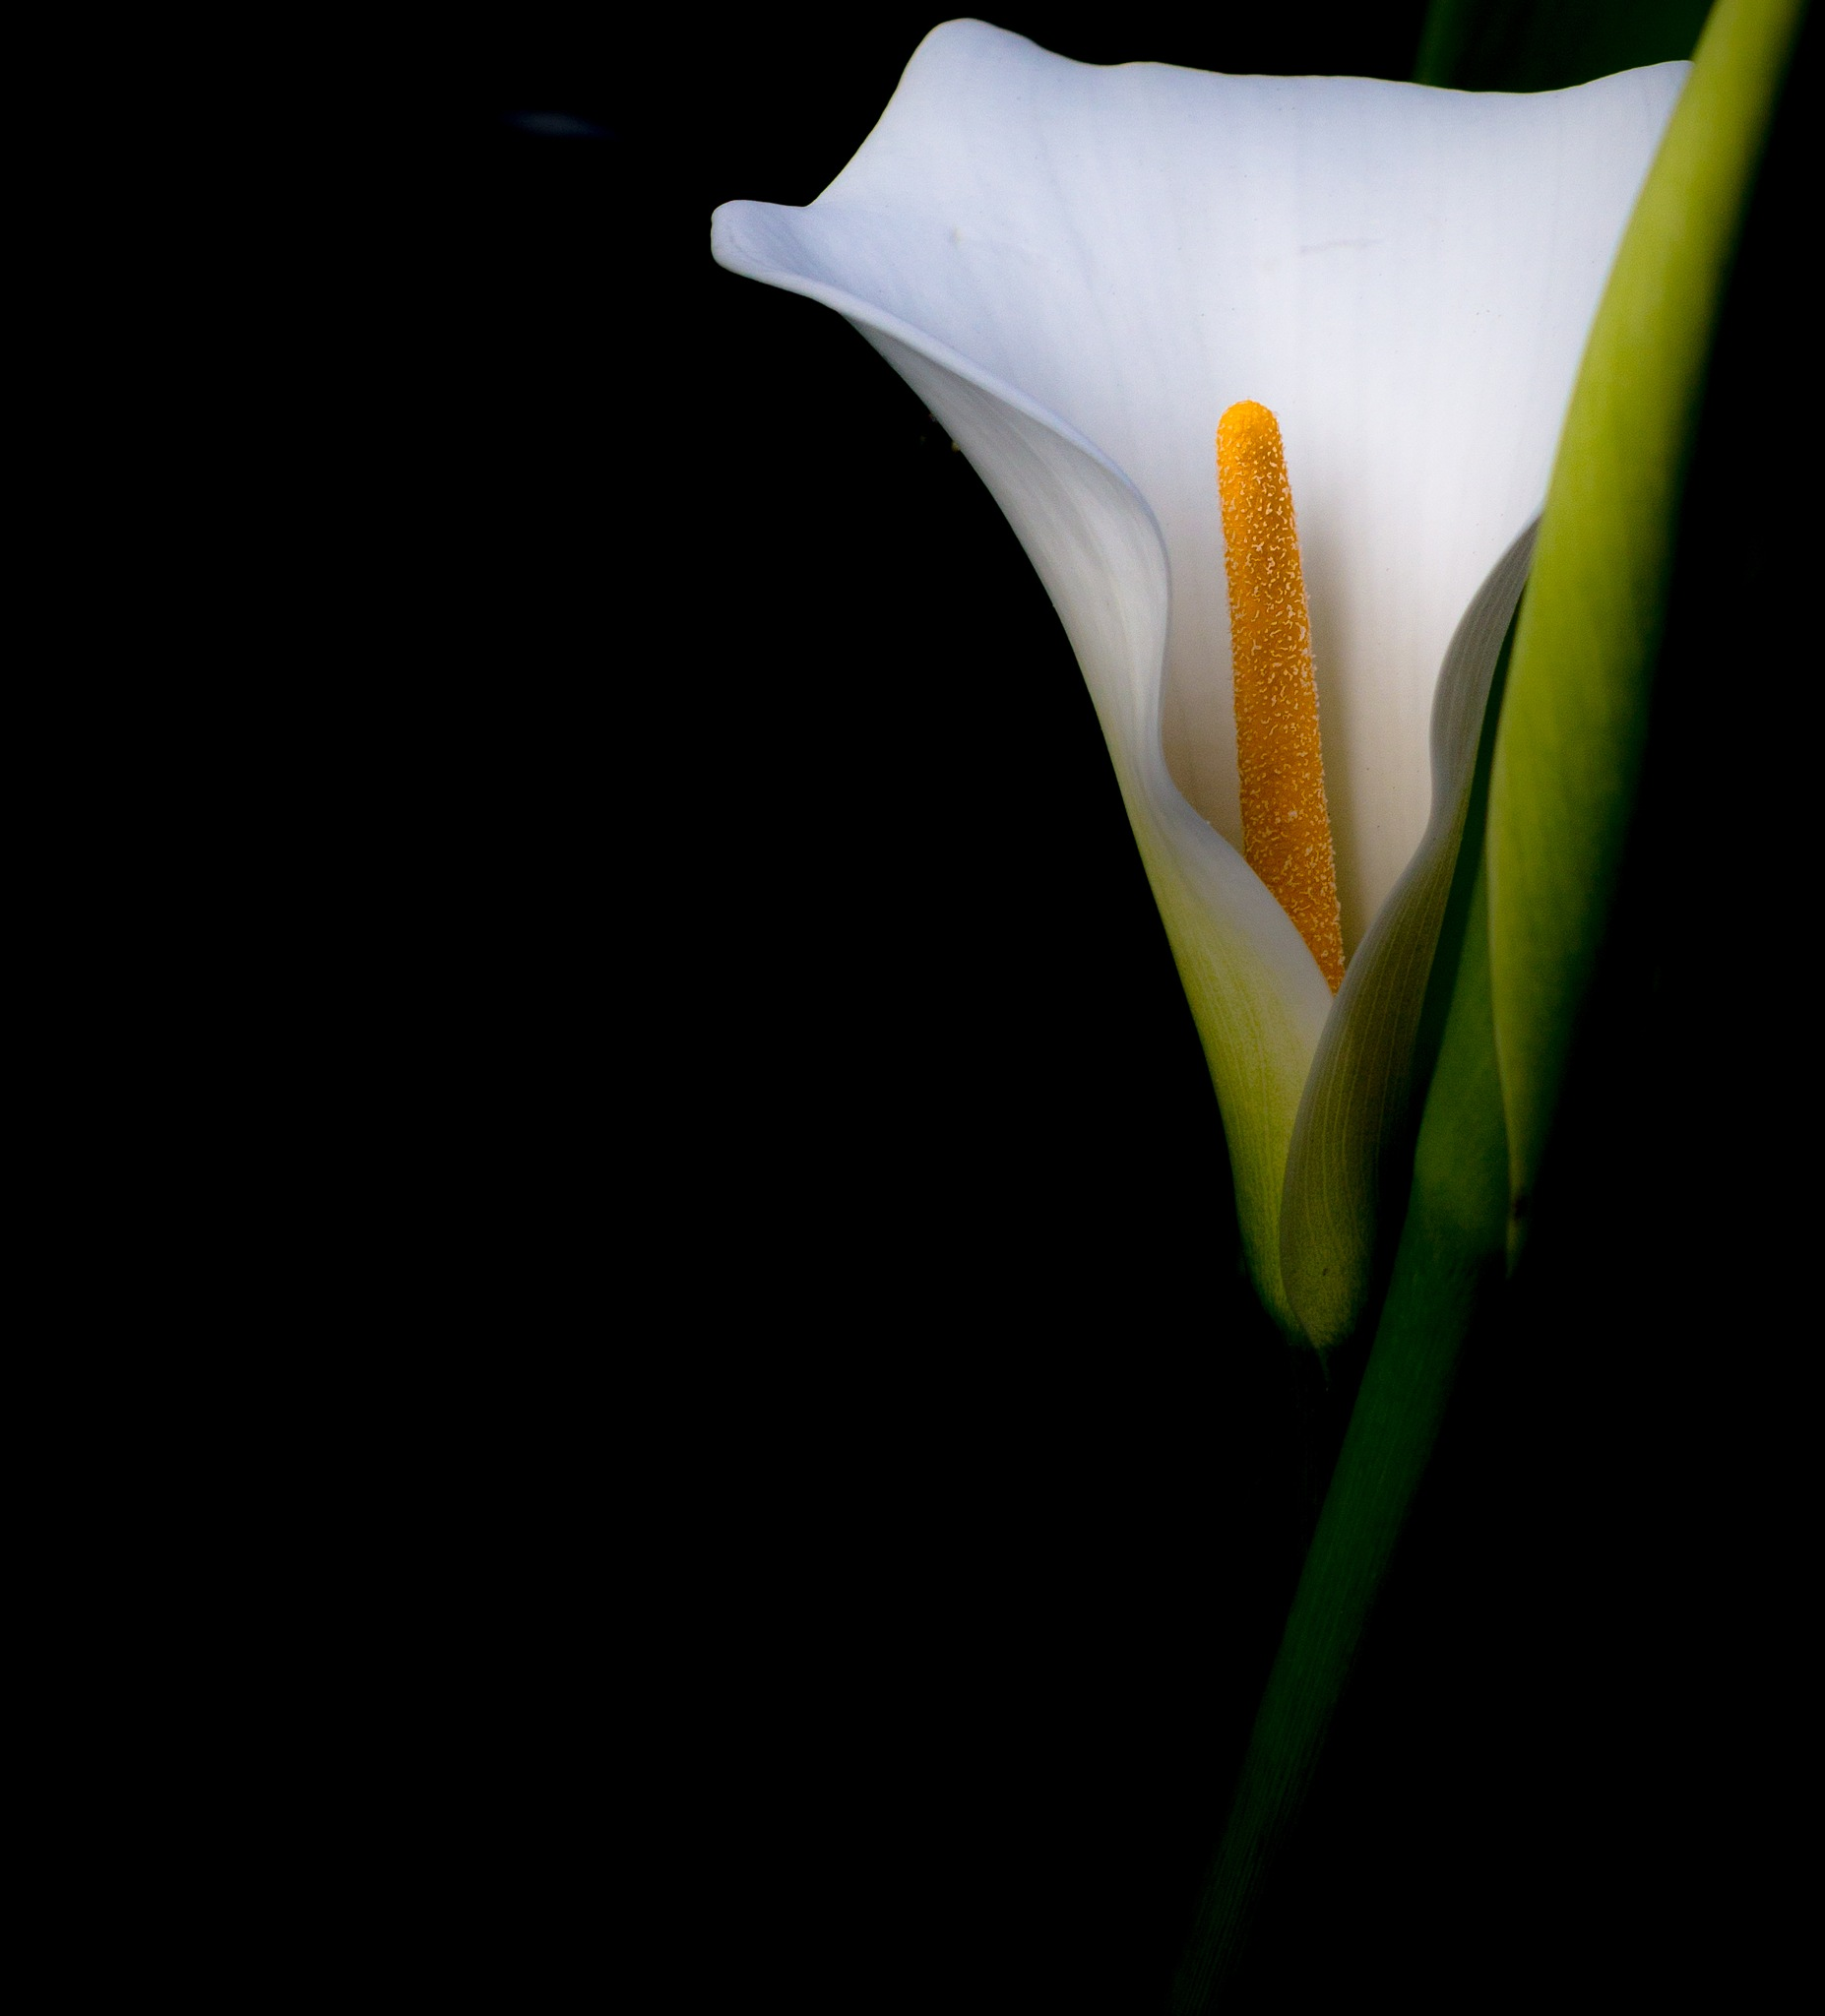 Calla Lilly by Paul Tuckley